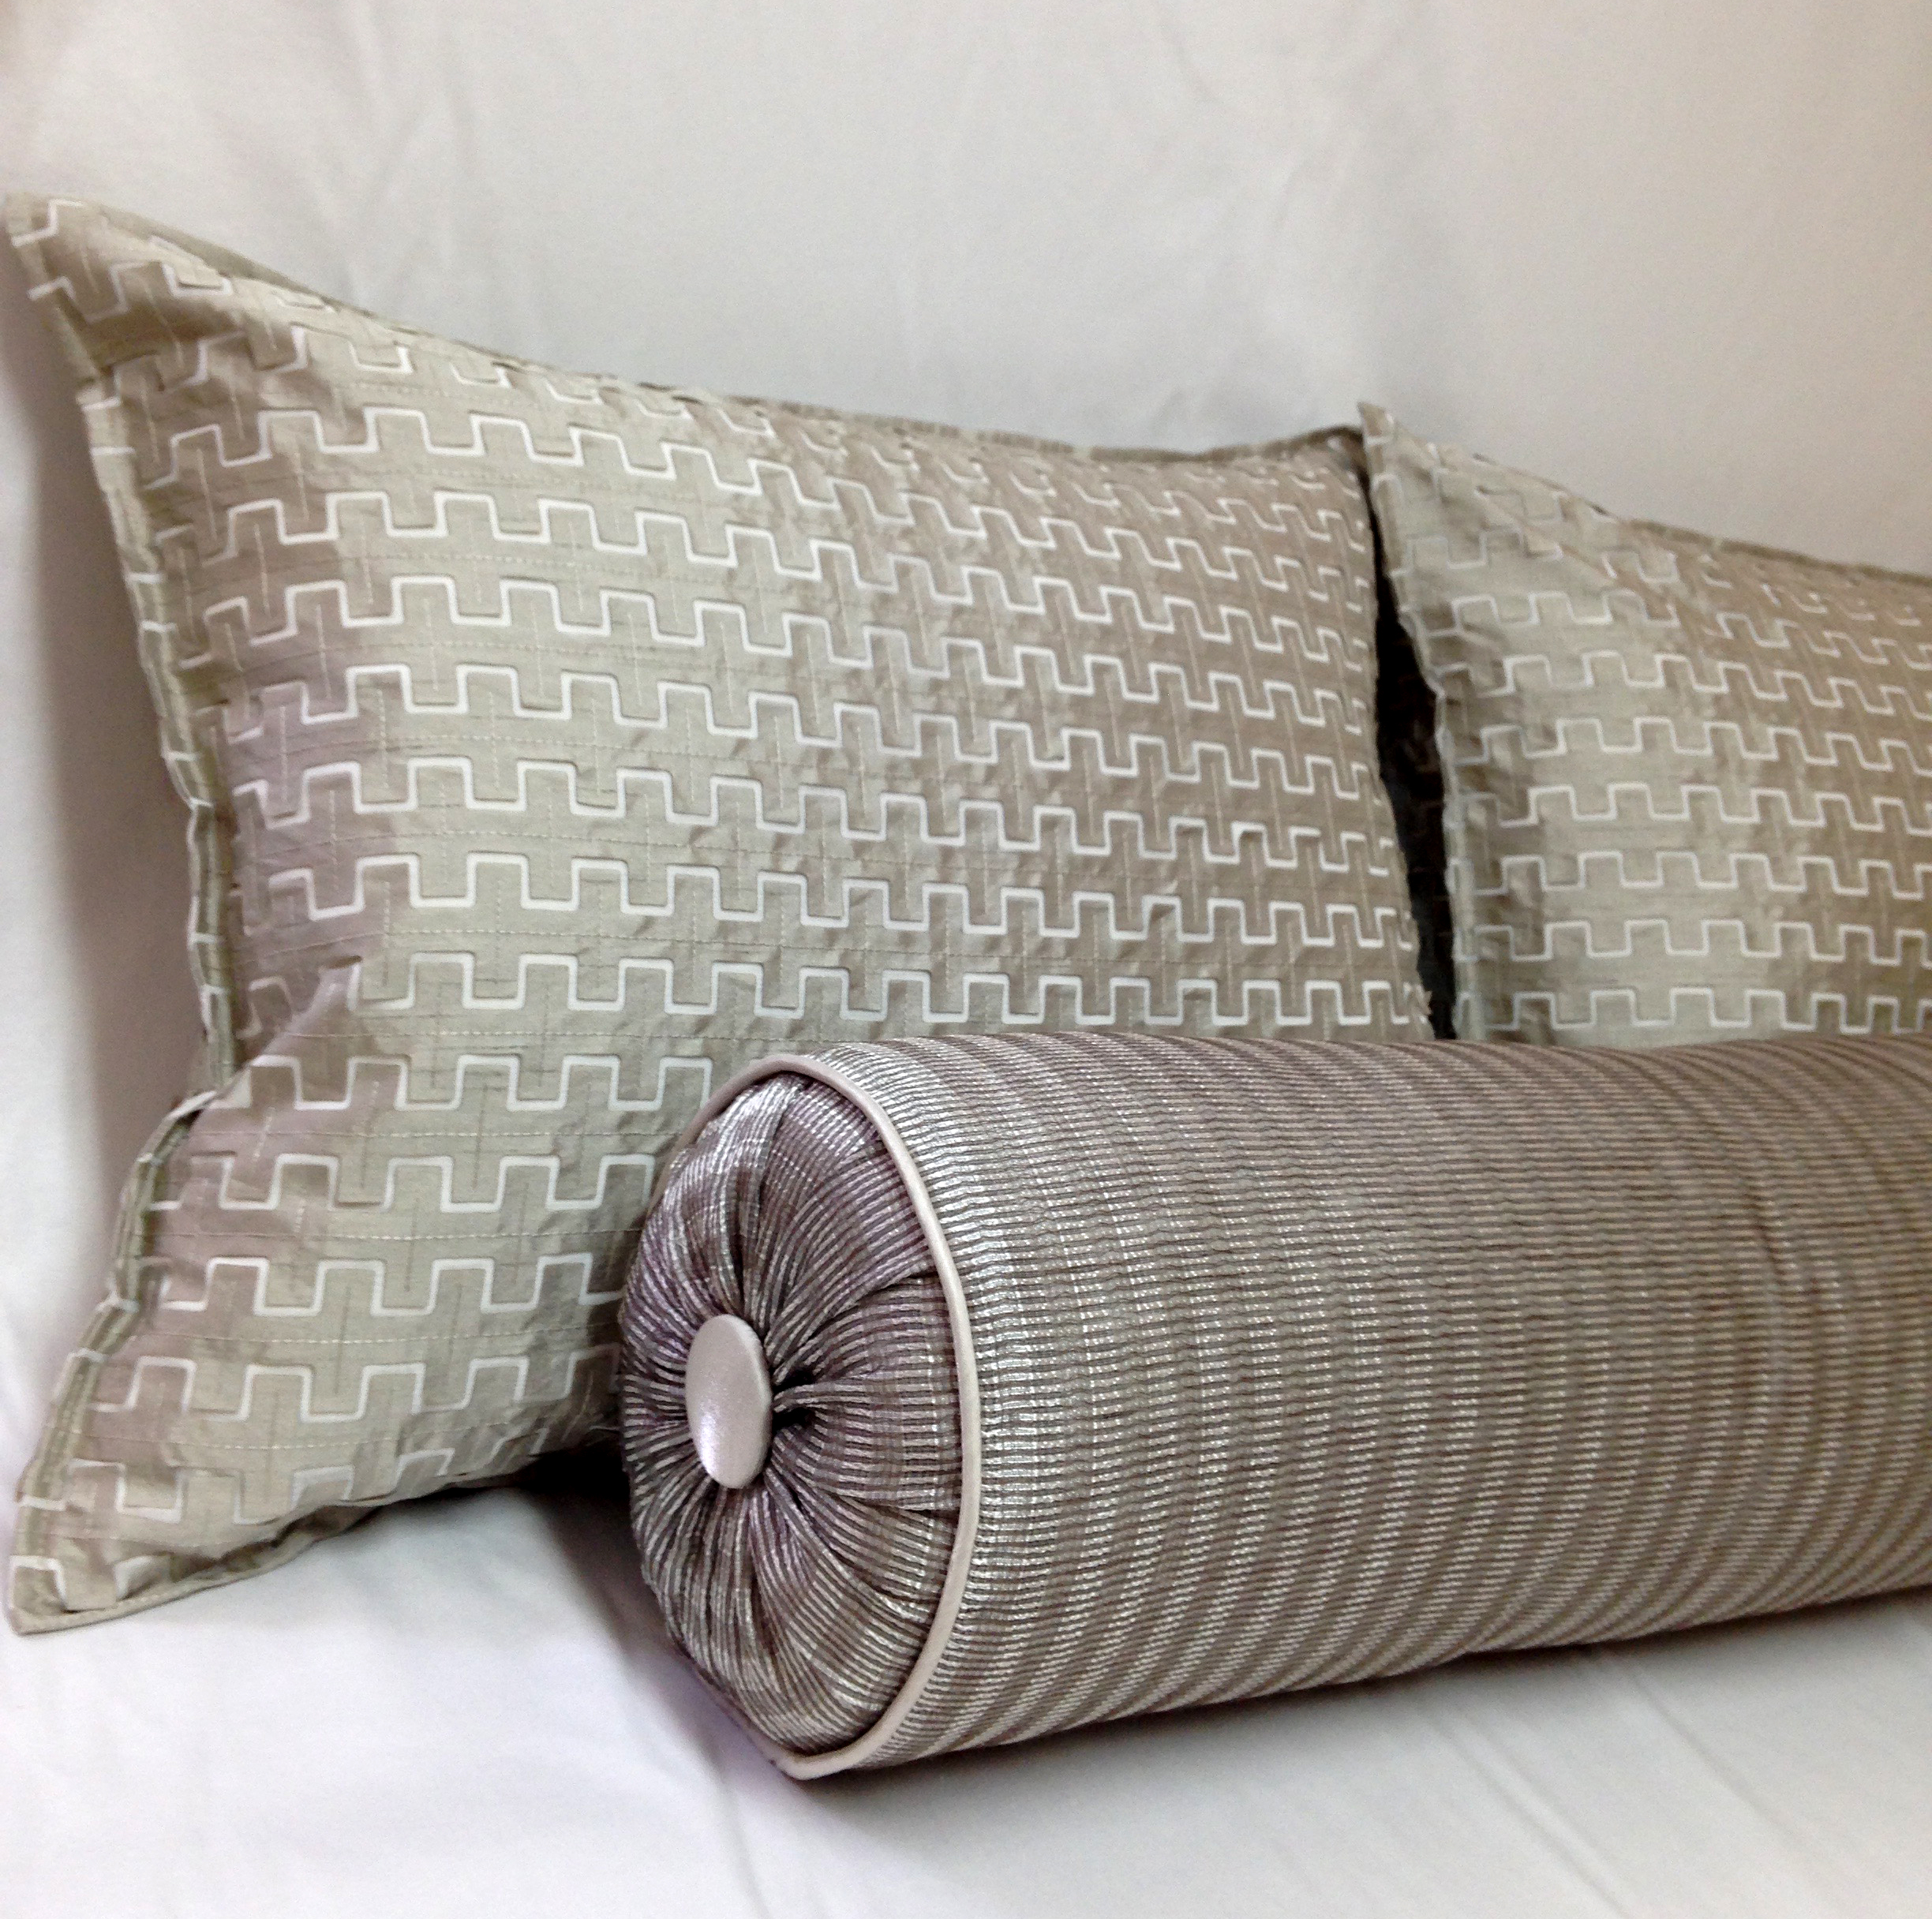 Textured Pillows with Self Flange and Bolster for Tracy deShazo Interiors